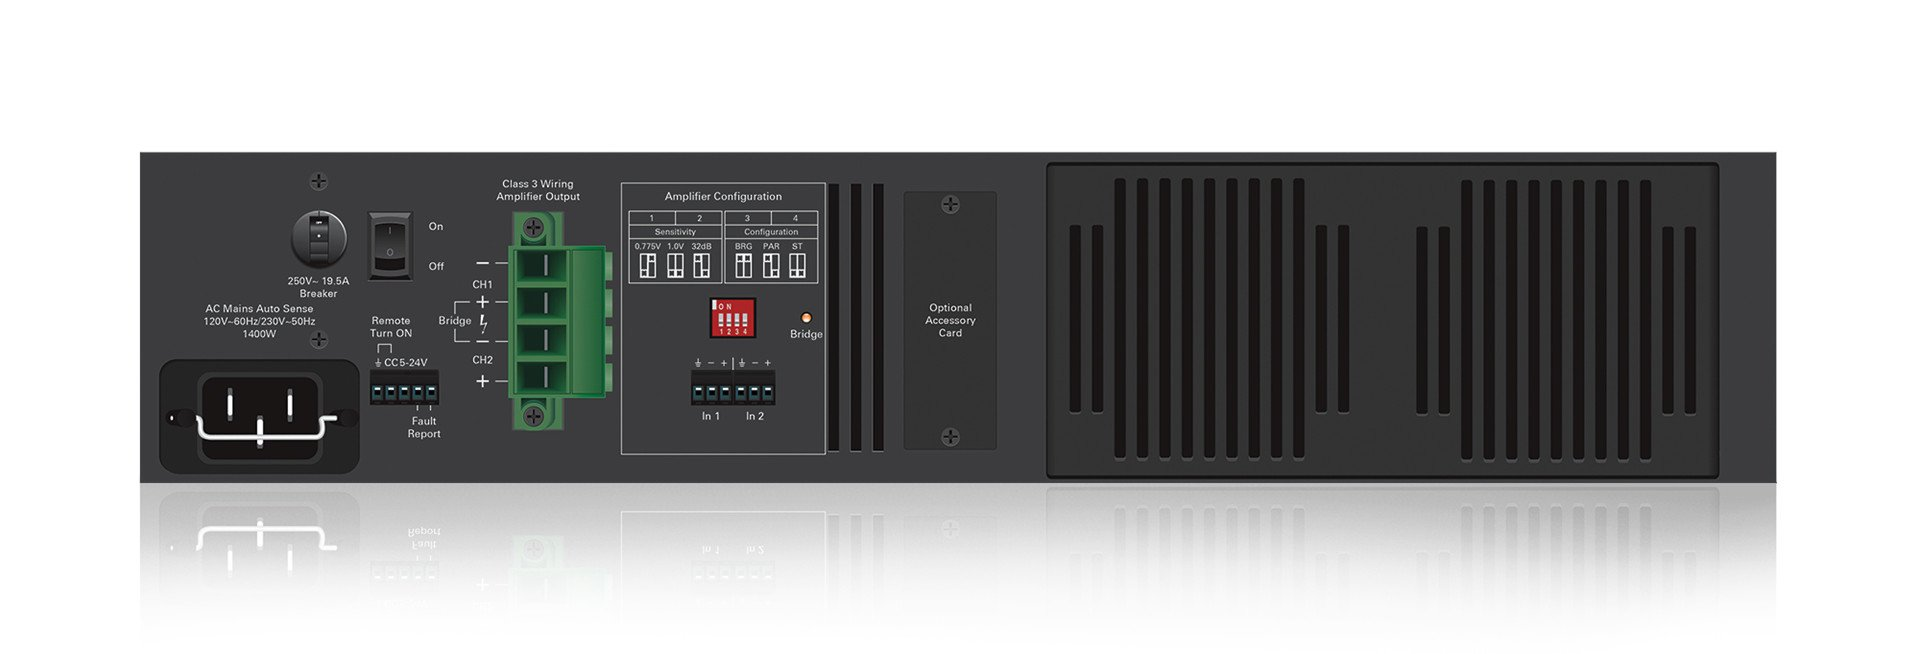 3200 W High Performance, Dual Channel Commercial Amplifier